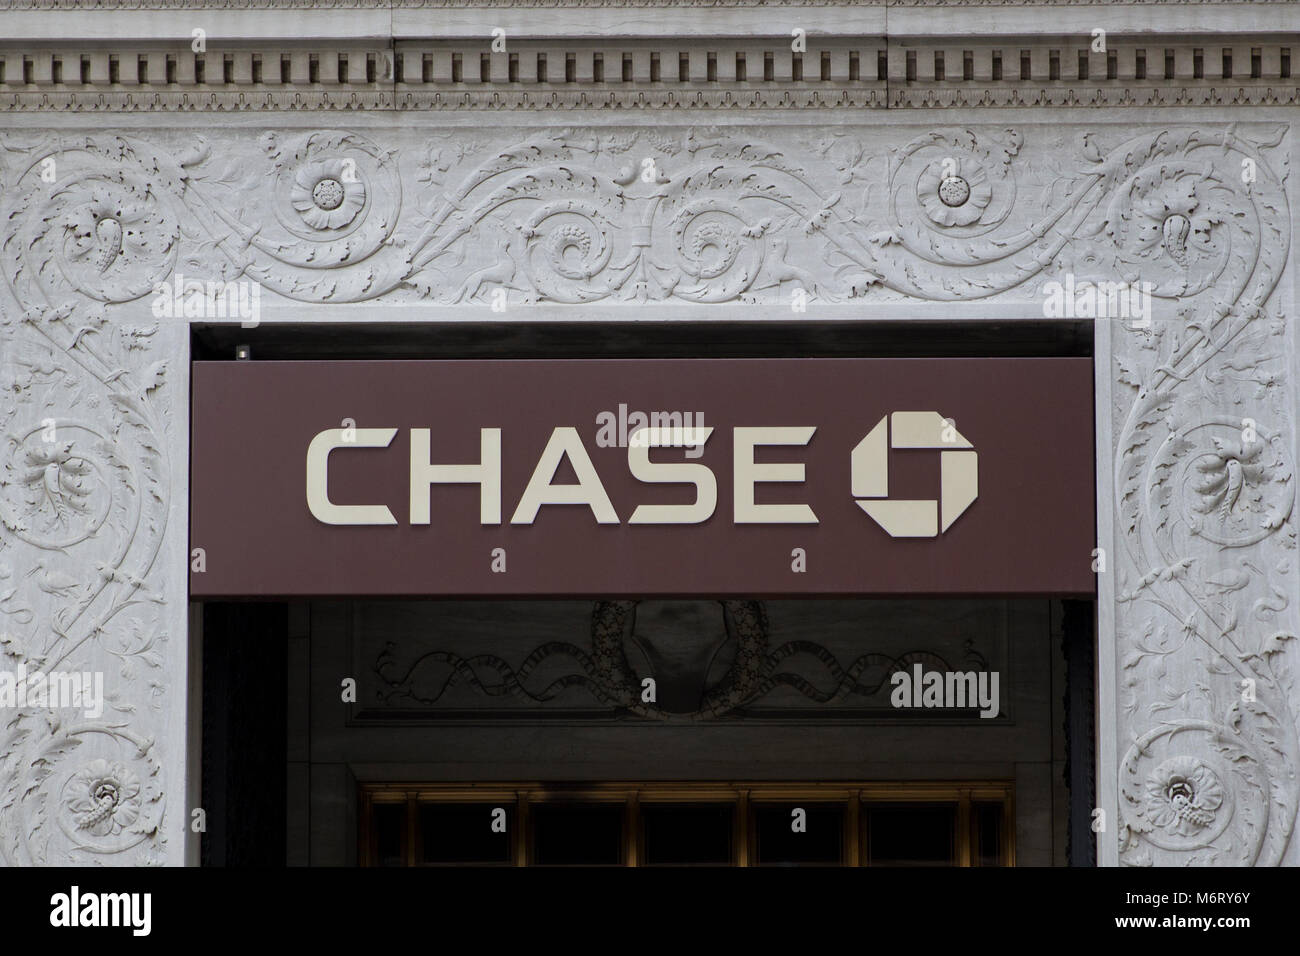 chase bank founded